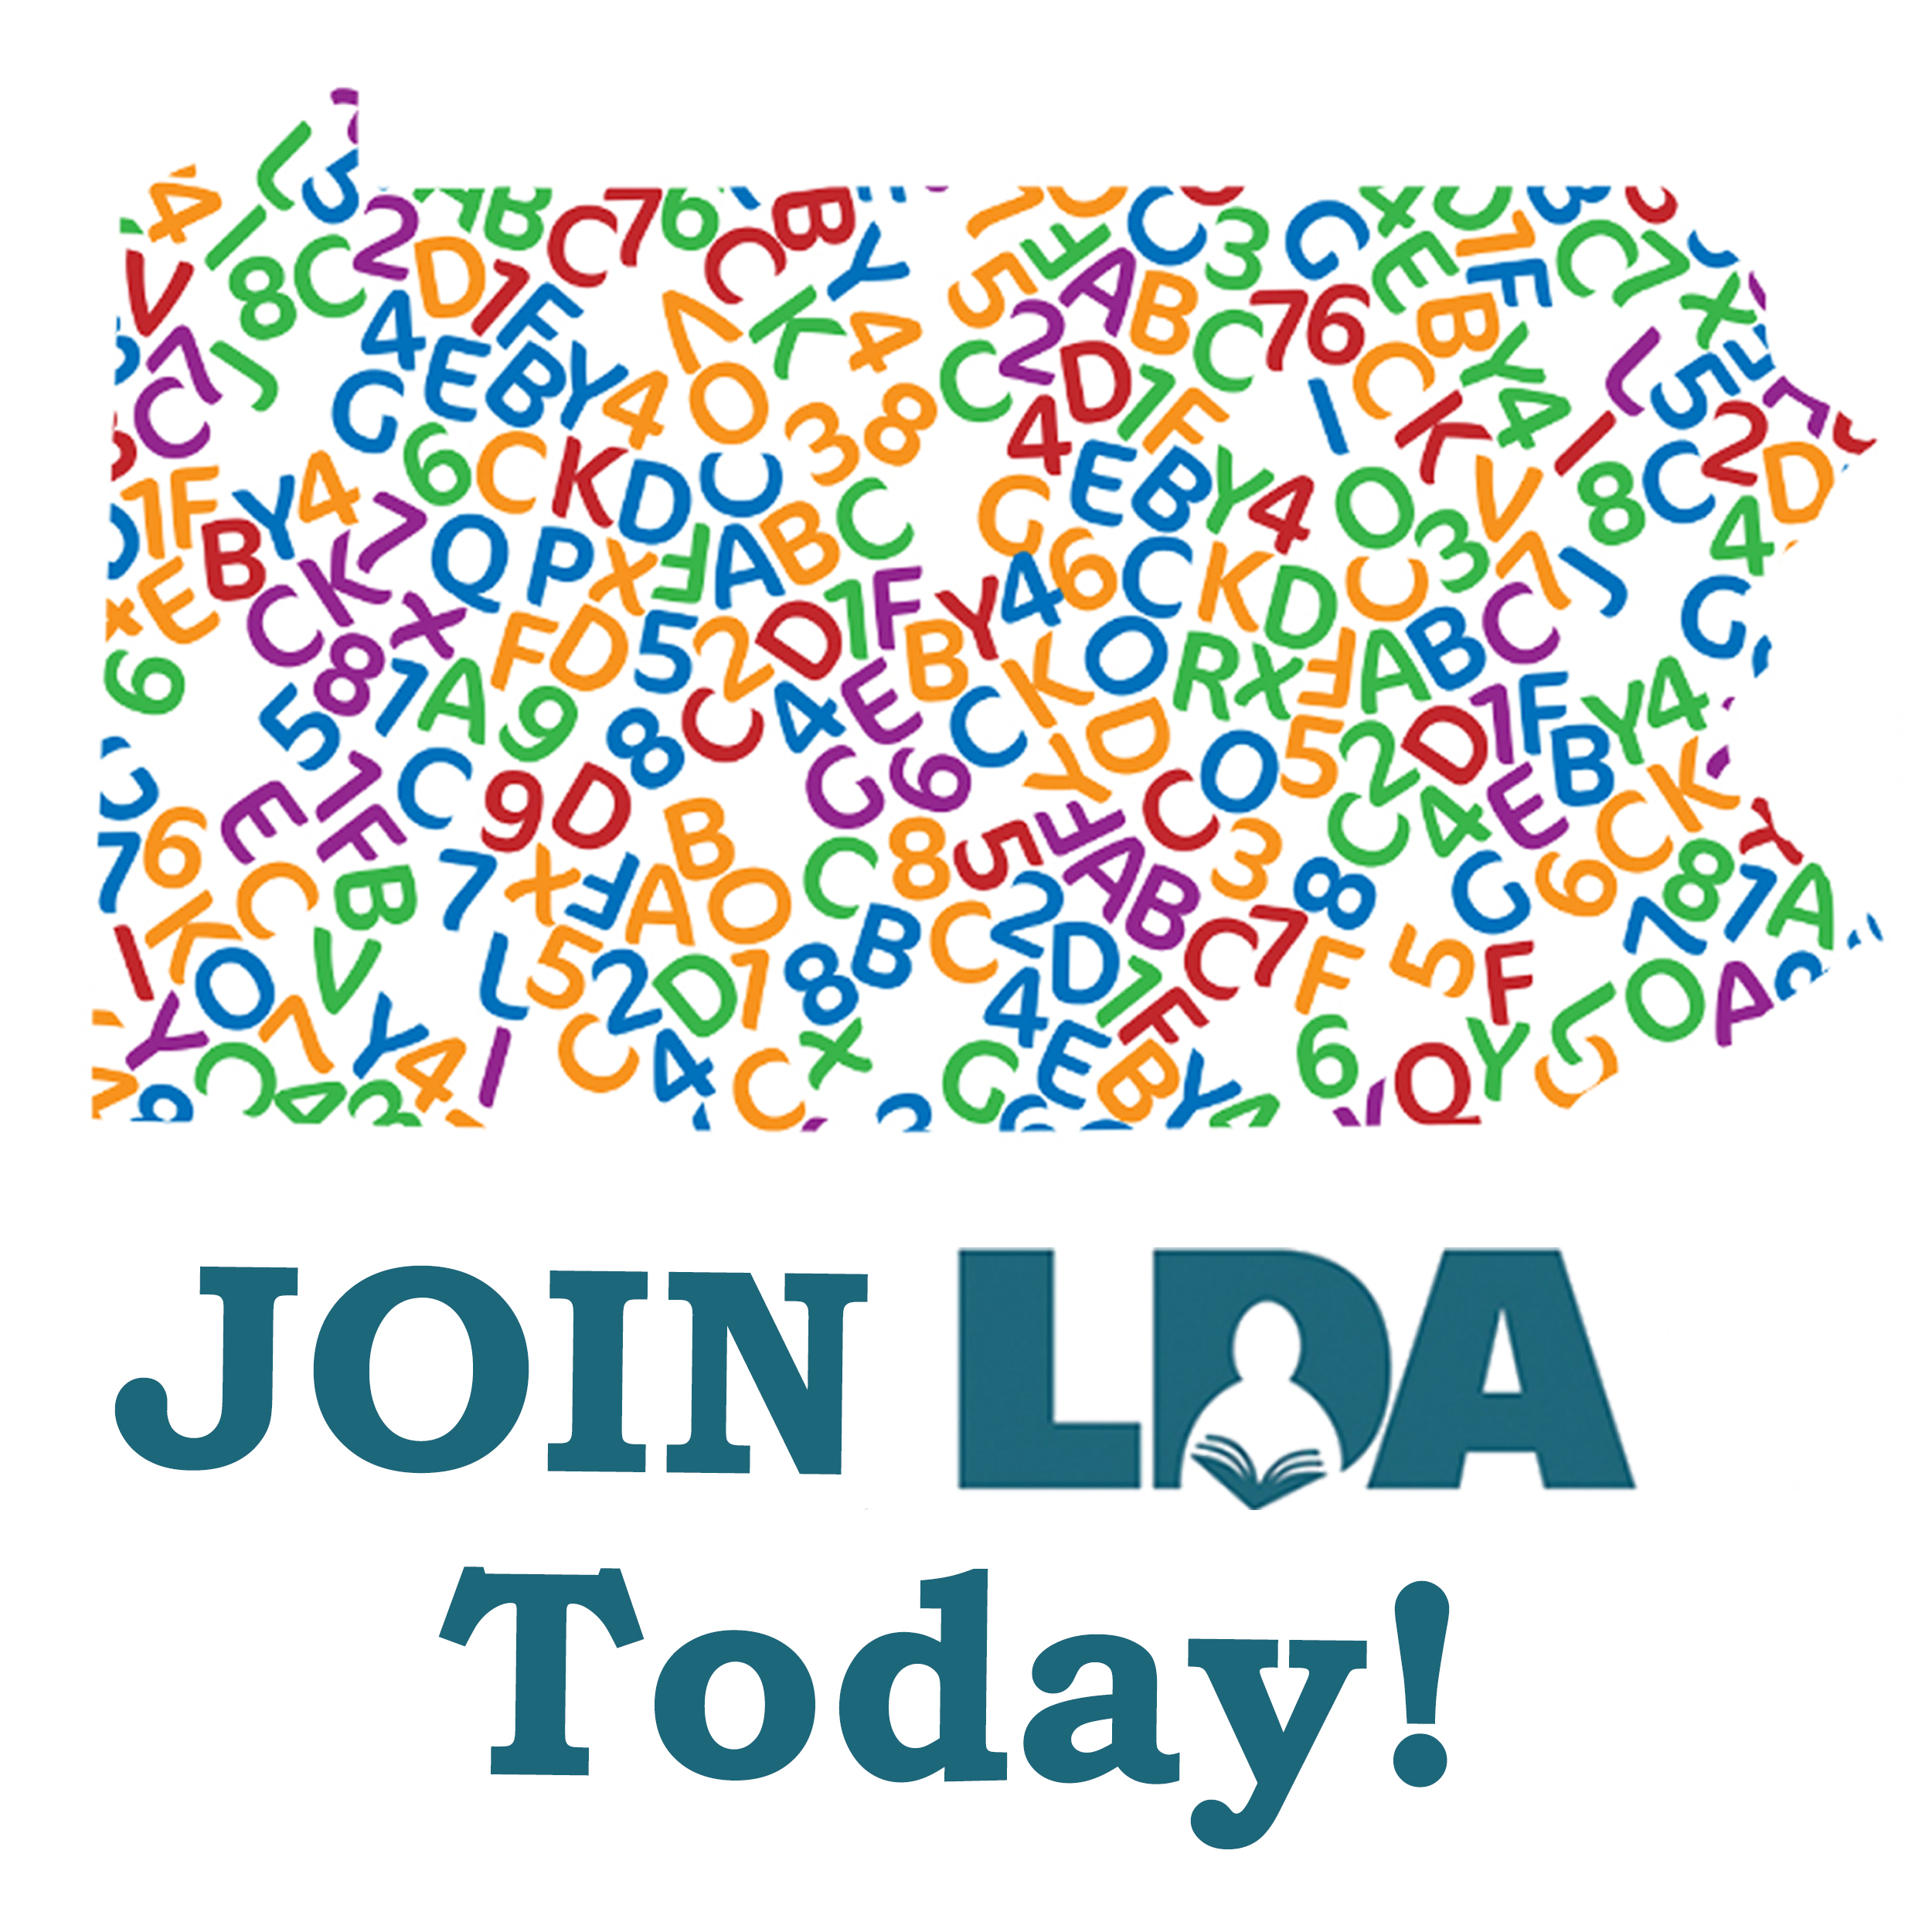 LET'S START SOMETHING NEW - JOIN LDA TODAY!Become a member of LDA of PA by registering with our national branch LDA America.